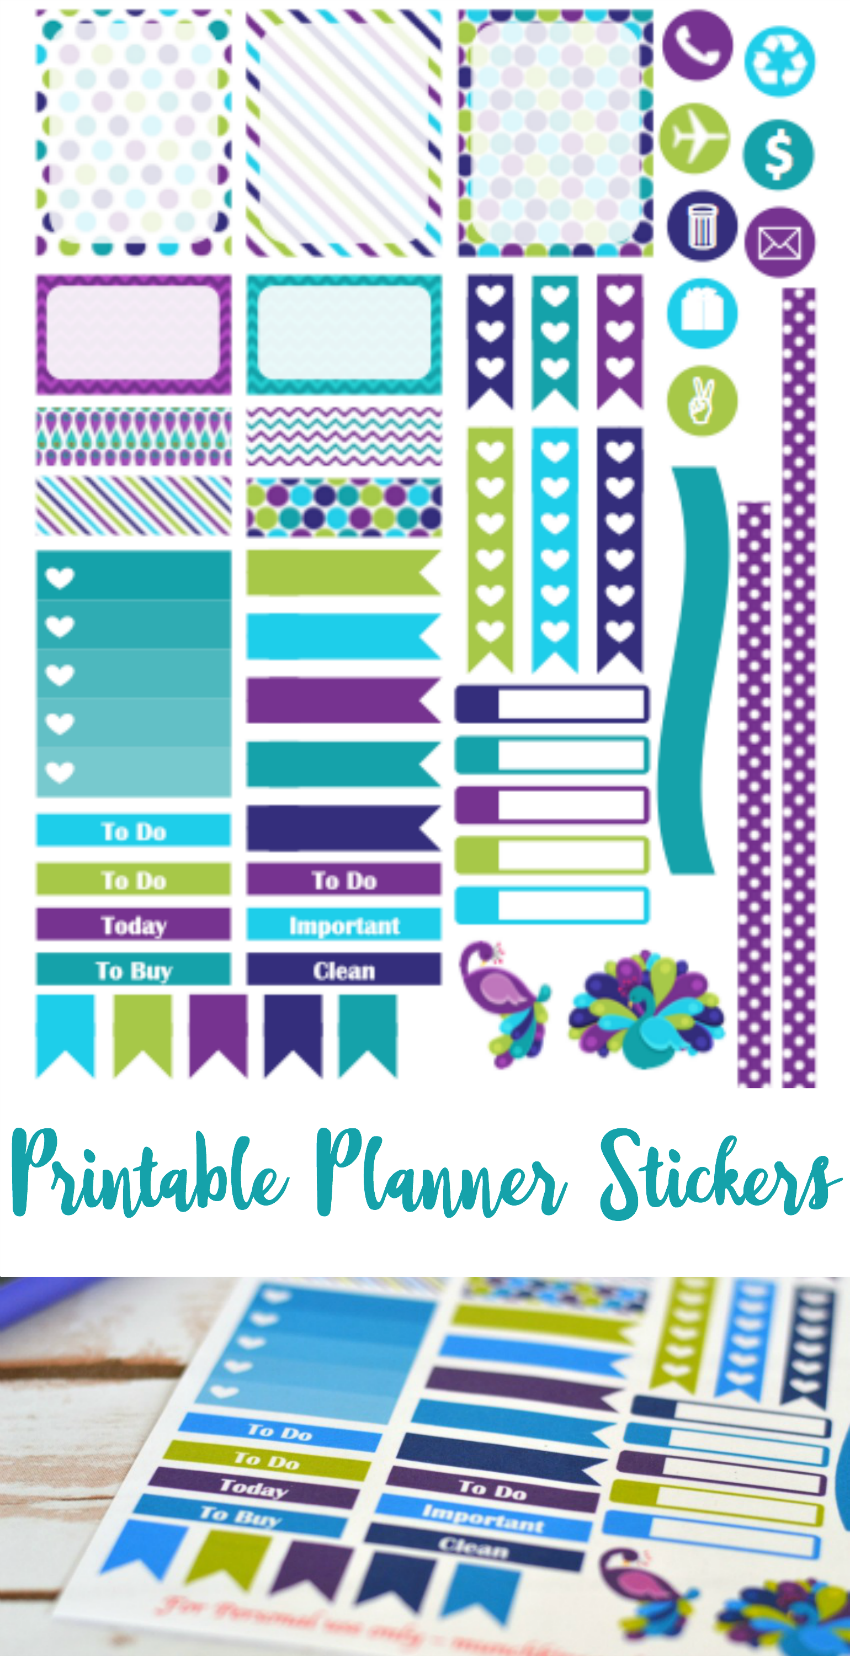 FREE purple peacock printable planner stickers for Septmeber Erin Condren Life Planner   Follow me @prodanbenoli for more awesome pins!